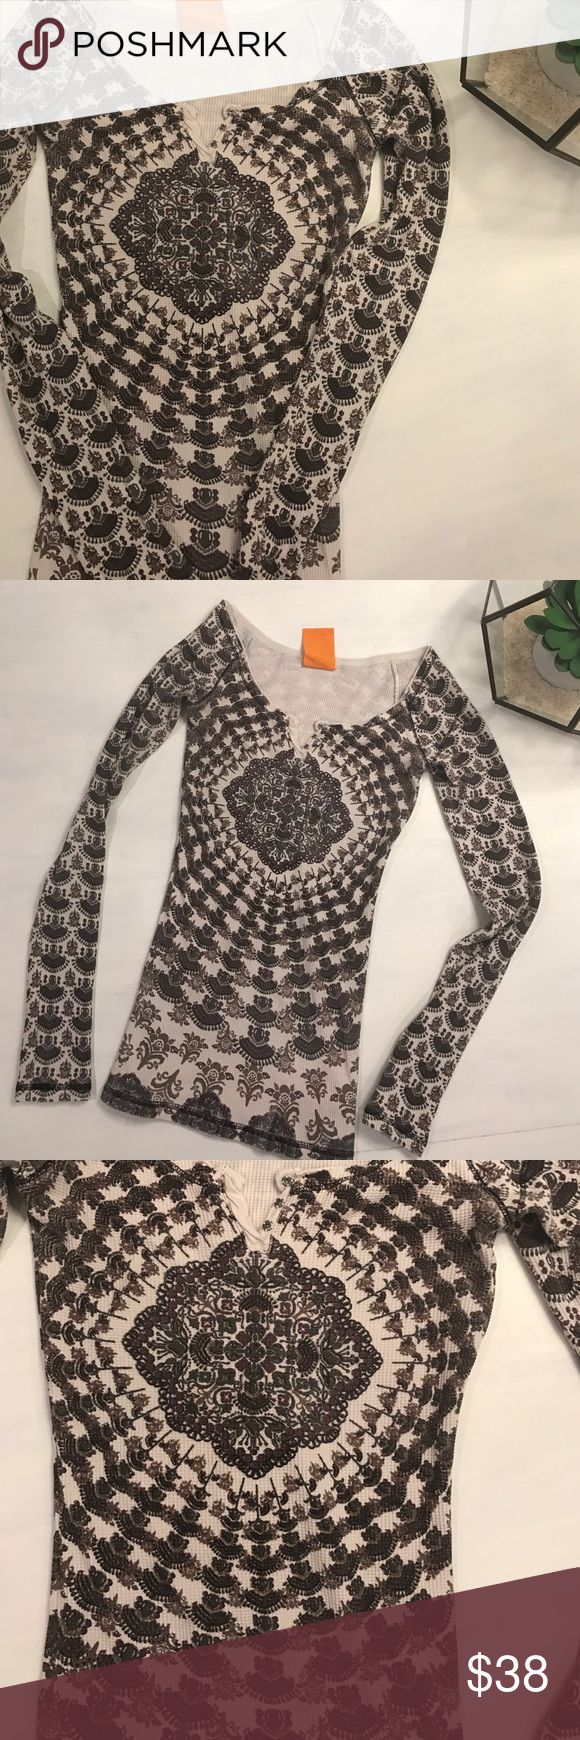 Free People Festival Explosion XS Gorgeous Mandala thermal by FP! Scoop neckline features three snaps, defined hem and cuffs and a gorgeous waffle knit print! Such a fun WARM thermal! Color is cream, tan, gray and a burgundy. Free People Tops